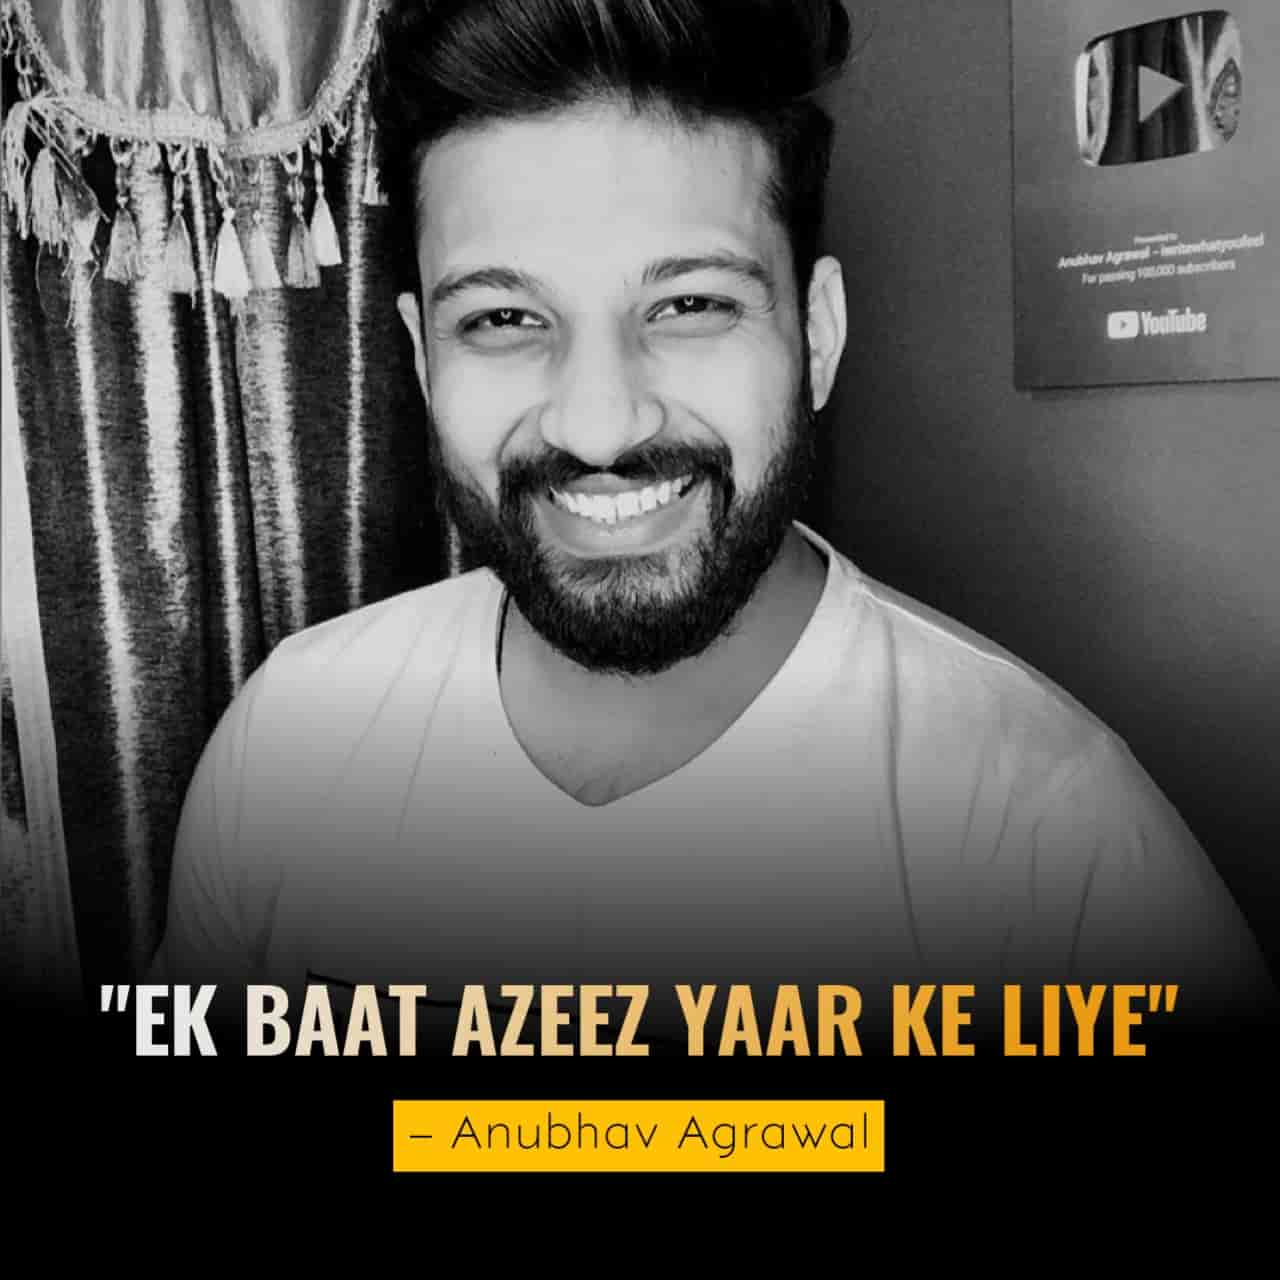 """This lovely poem """"Anubhav Agarwal"""" has written for his dear friend. It is not just a poem. It is a feeling that is expressed for his dear friend."""